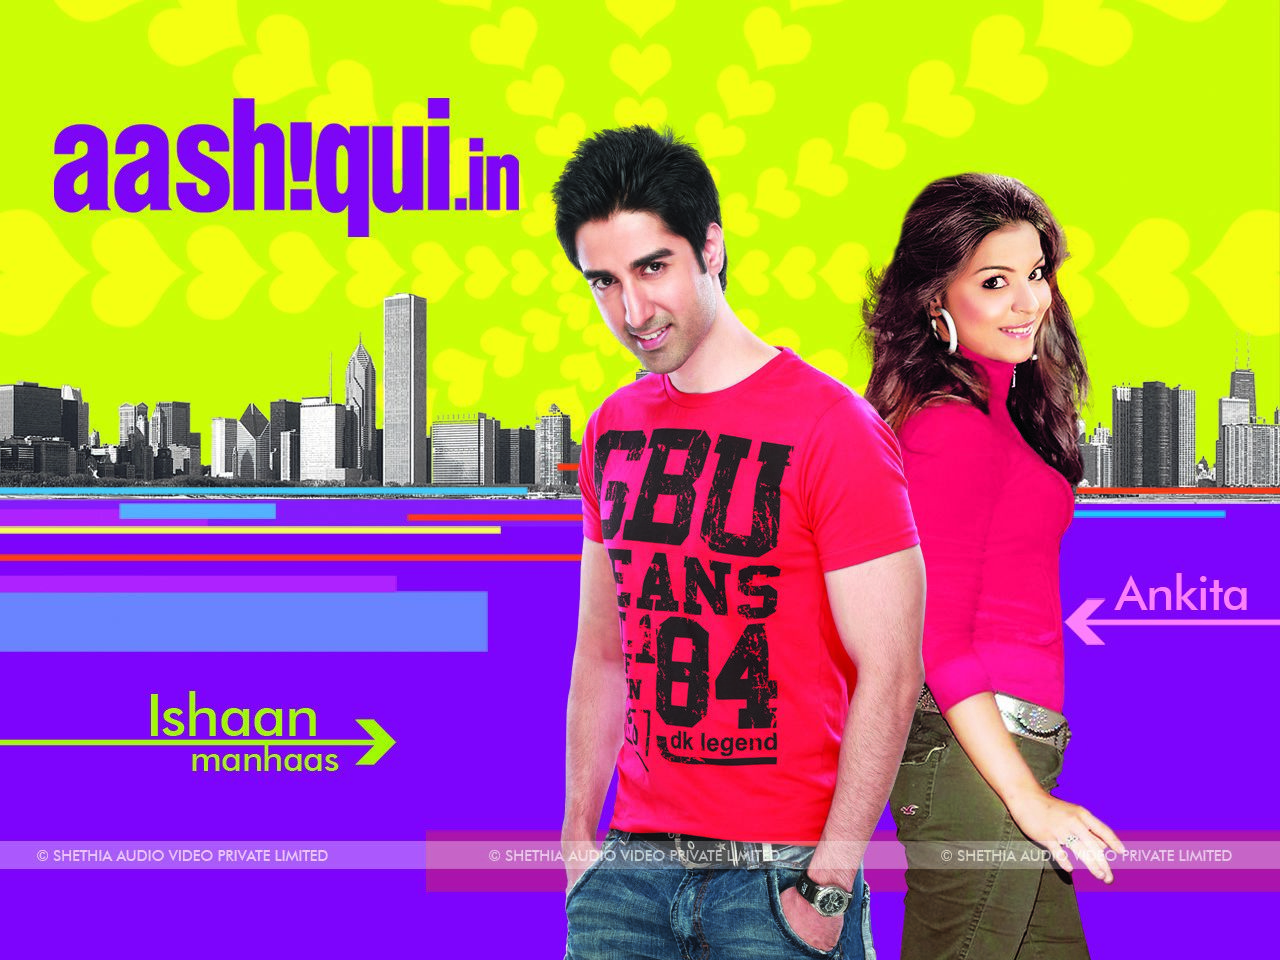 http://3.bp.blogspot.com/_2yYM328mCbk/TVJAzZZLUOI/AAAAAAAAG_I/xvkEOjjPjhA/s1600/Aashiqui.in+Movie+New+Wallpapers_01.jpg